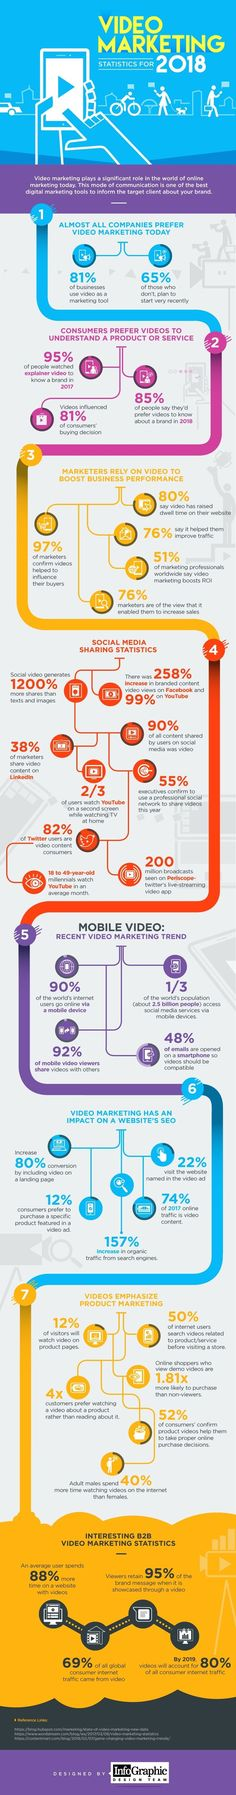 40 Video Marketing Stats from 2018 Small Business Owners Need to Know [Infographic]